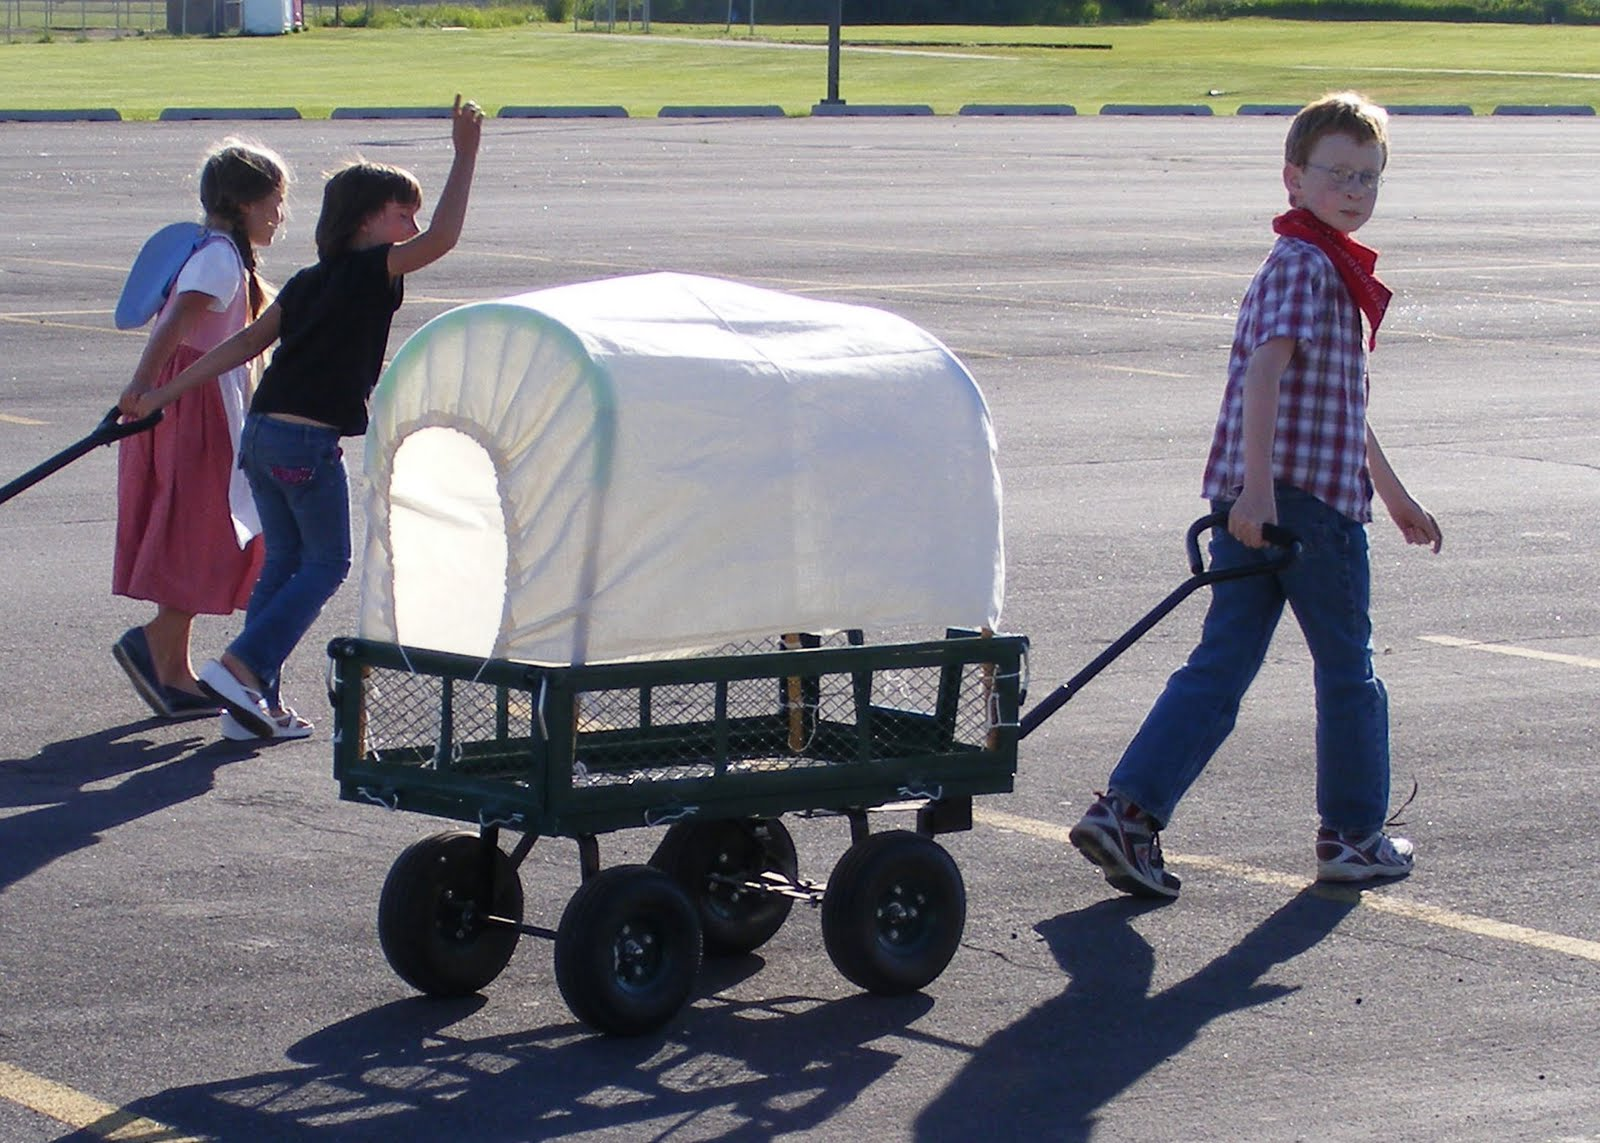 Chasing Paper Dreams A Boy And His Covered Wagon